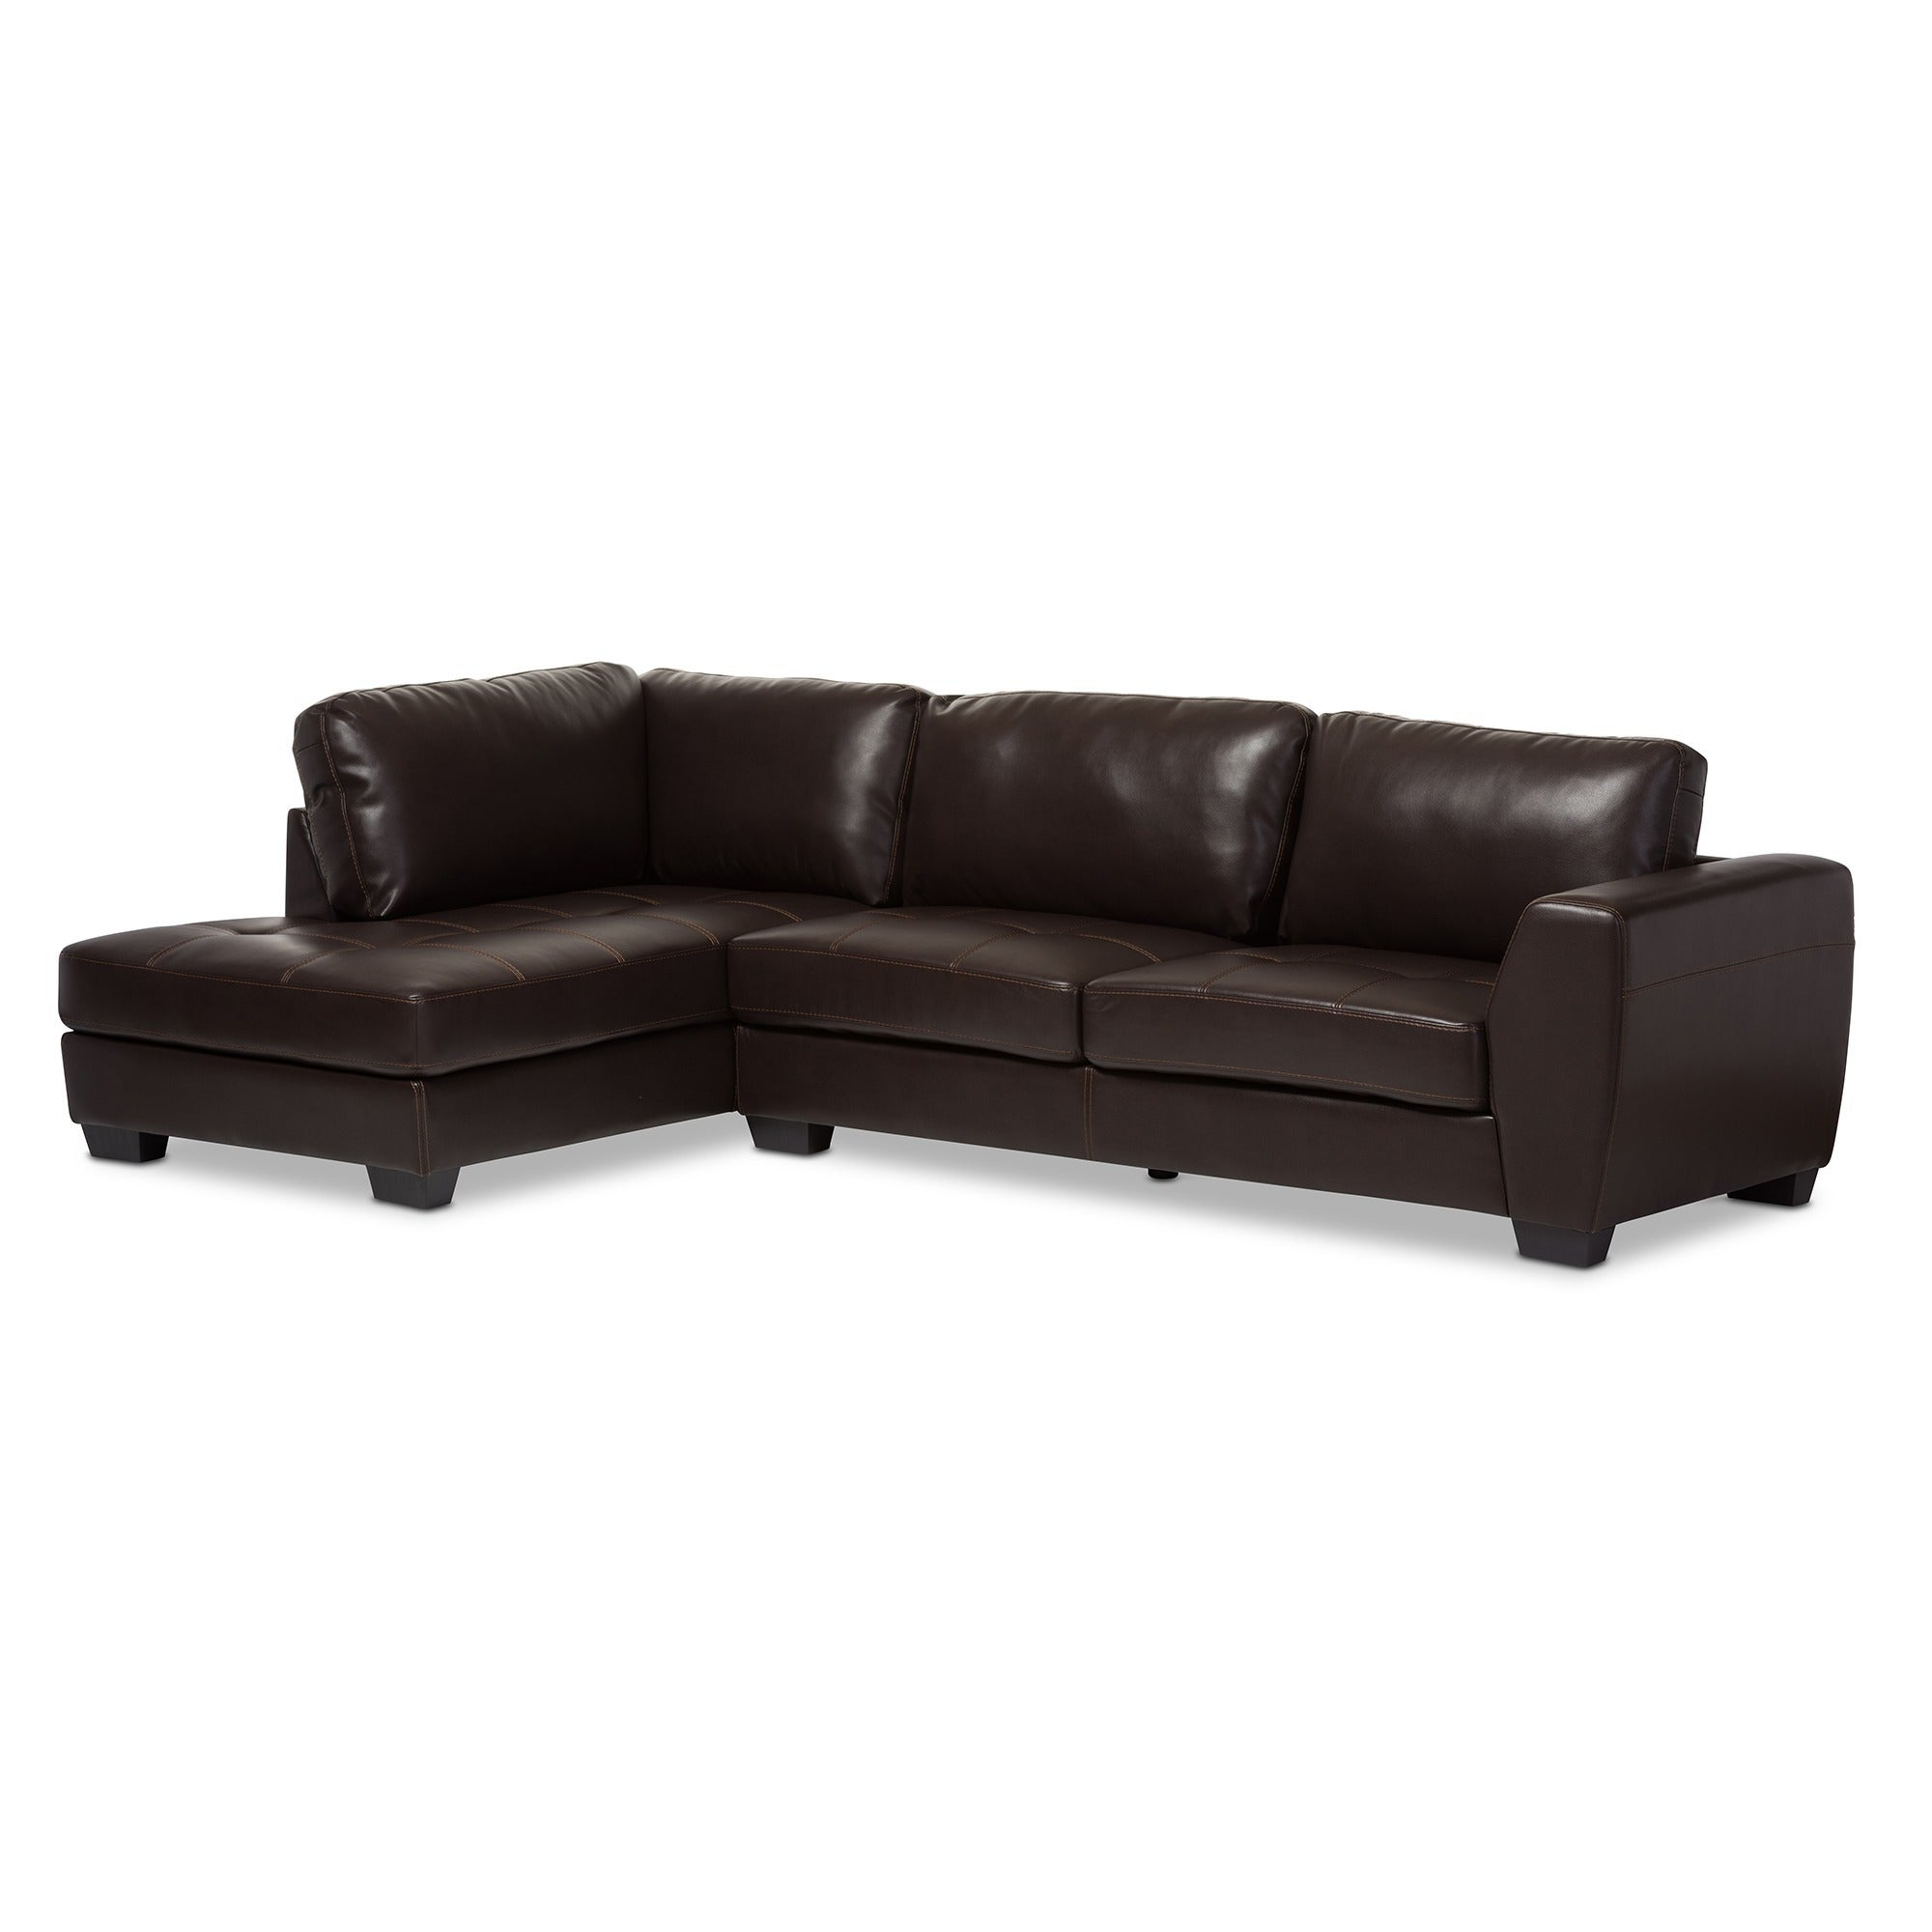 orland brown leather modern sectional sofa set with left facing chaise free shipping today  overstockcom  . orland brown leather modern sectional sofa set with left facing